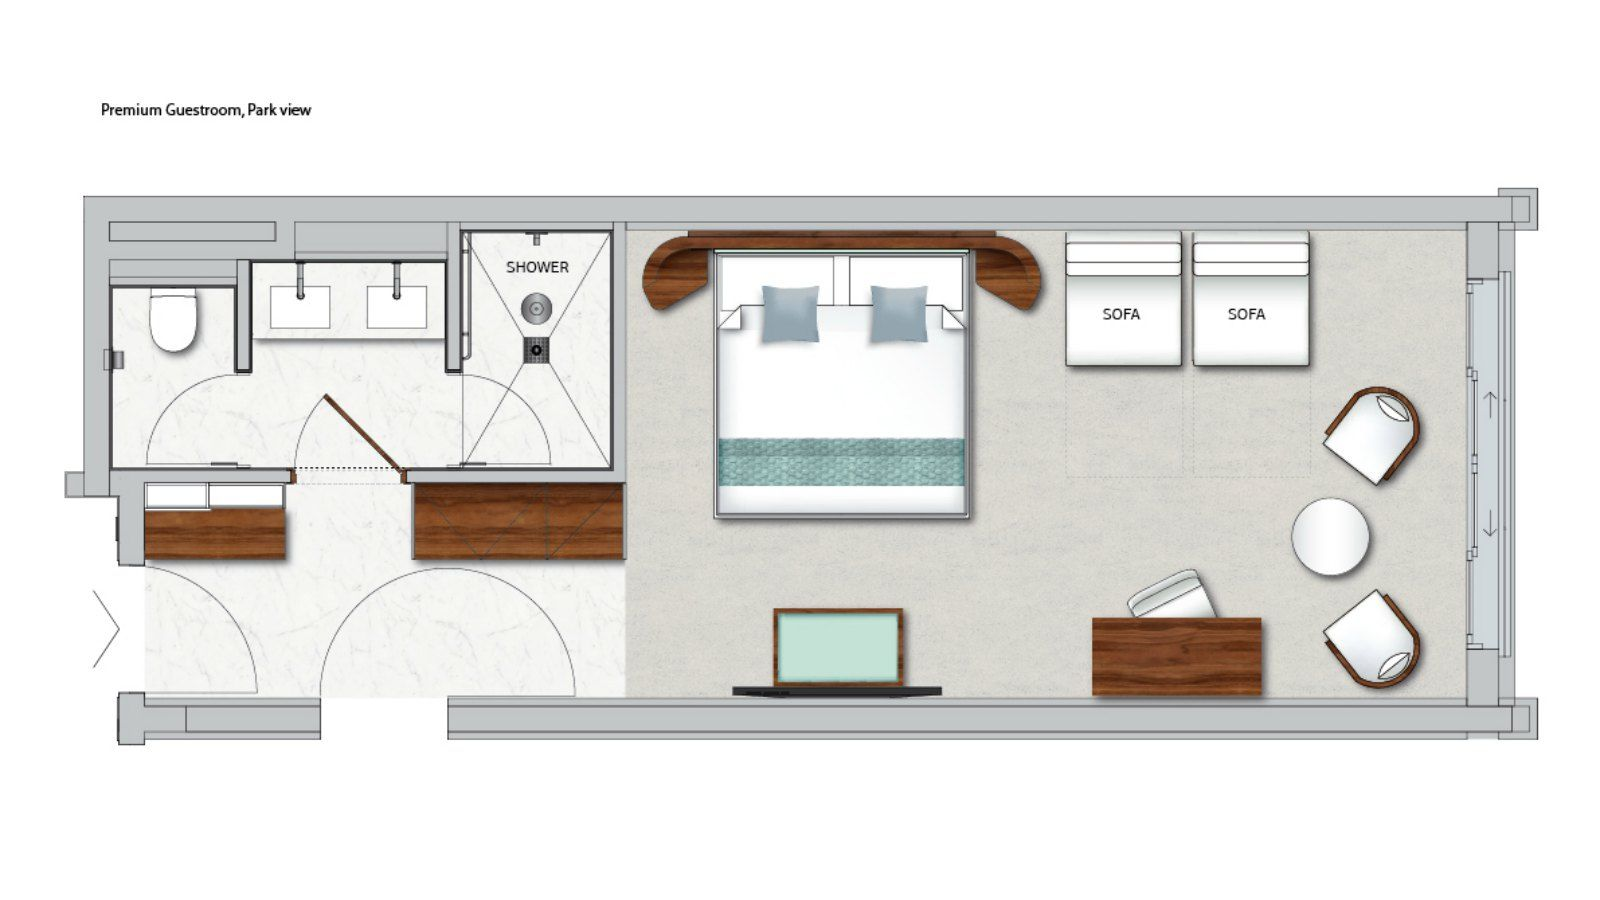 Floor Plan of Premium Guestroom, Park View